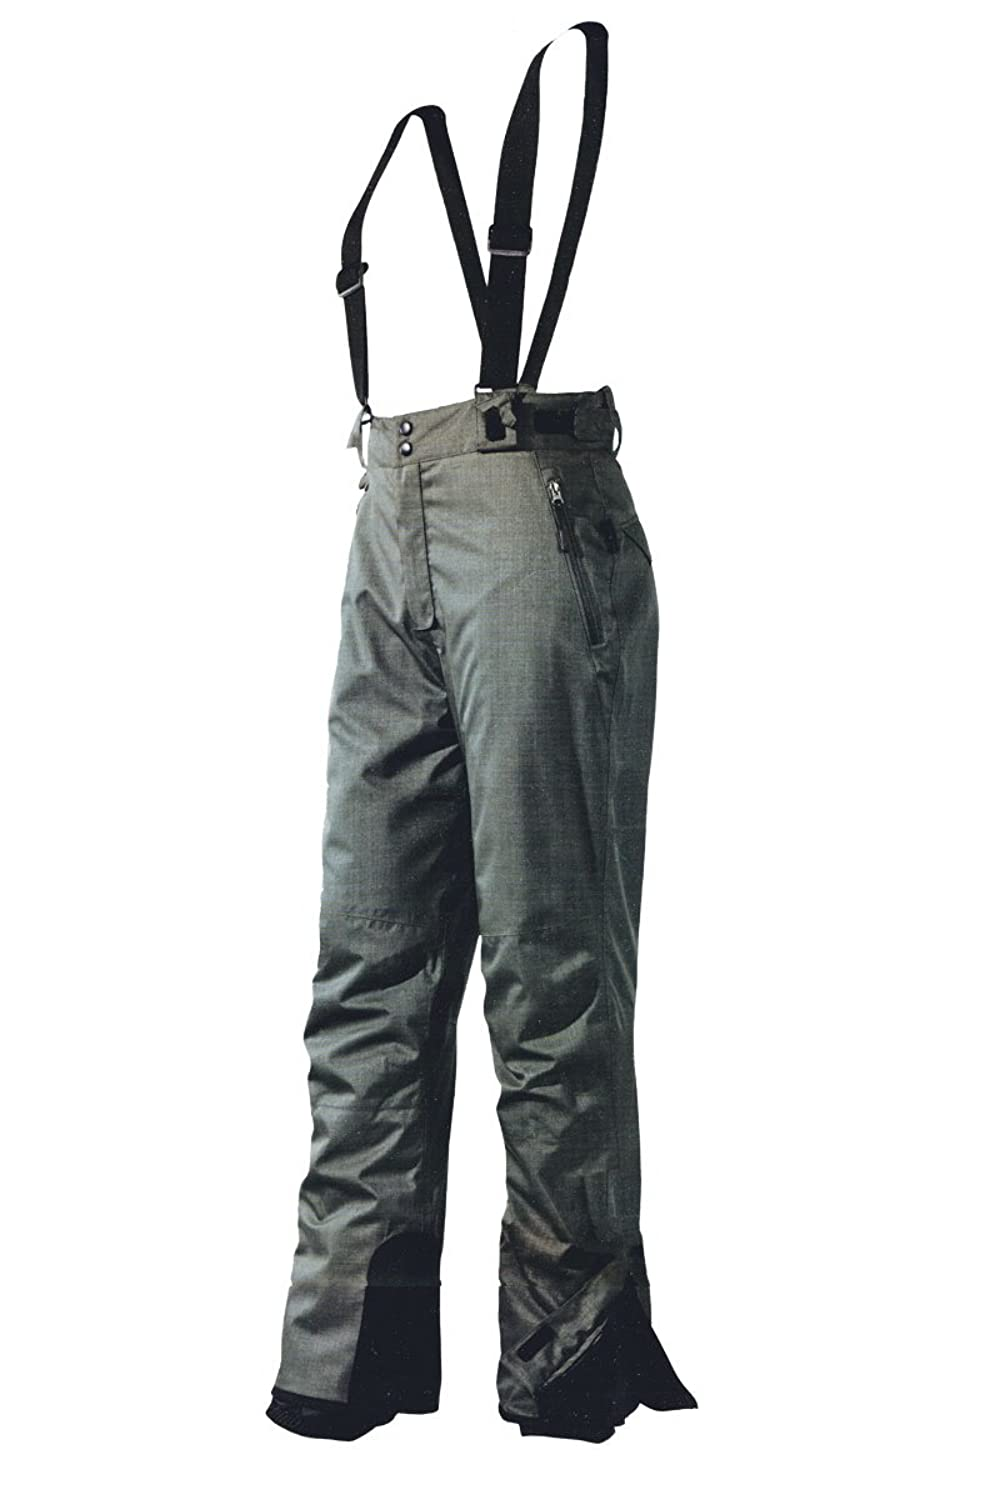 Herren High Performance Skihose Schneehose Winterhose